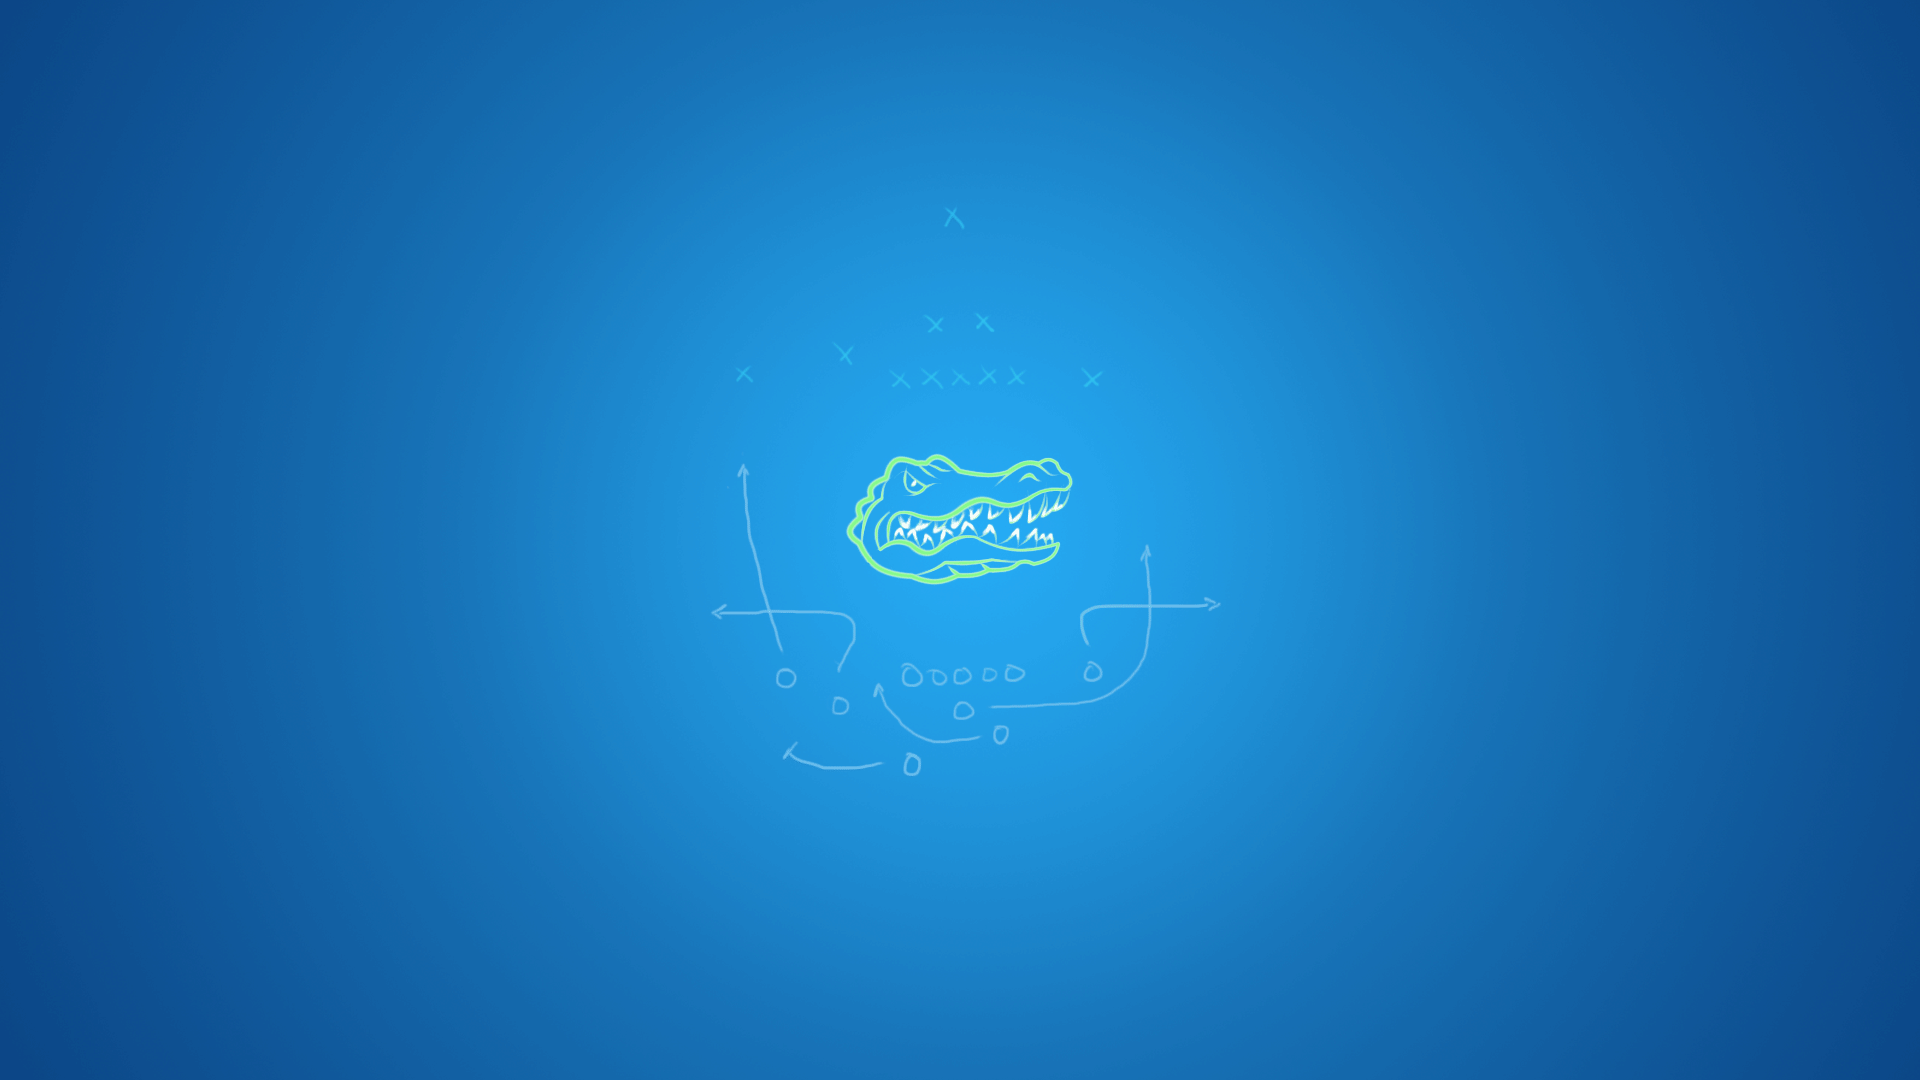 [48+] Florida Gator Screensavers And Wallpaper On